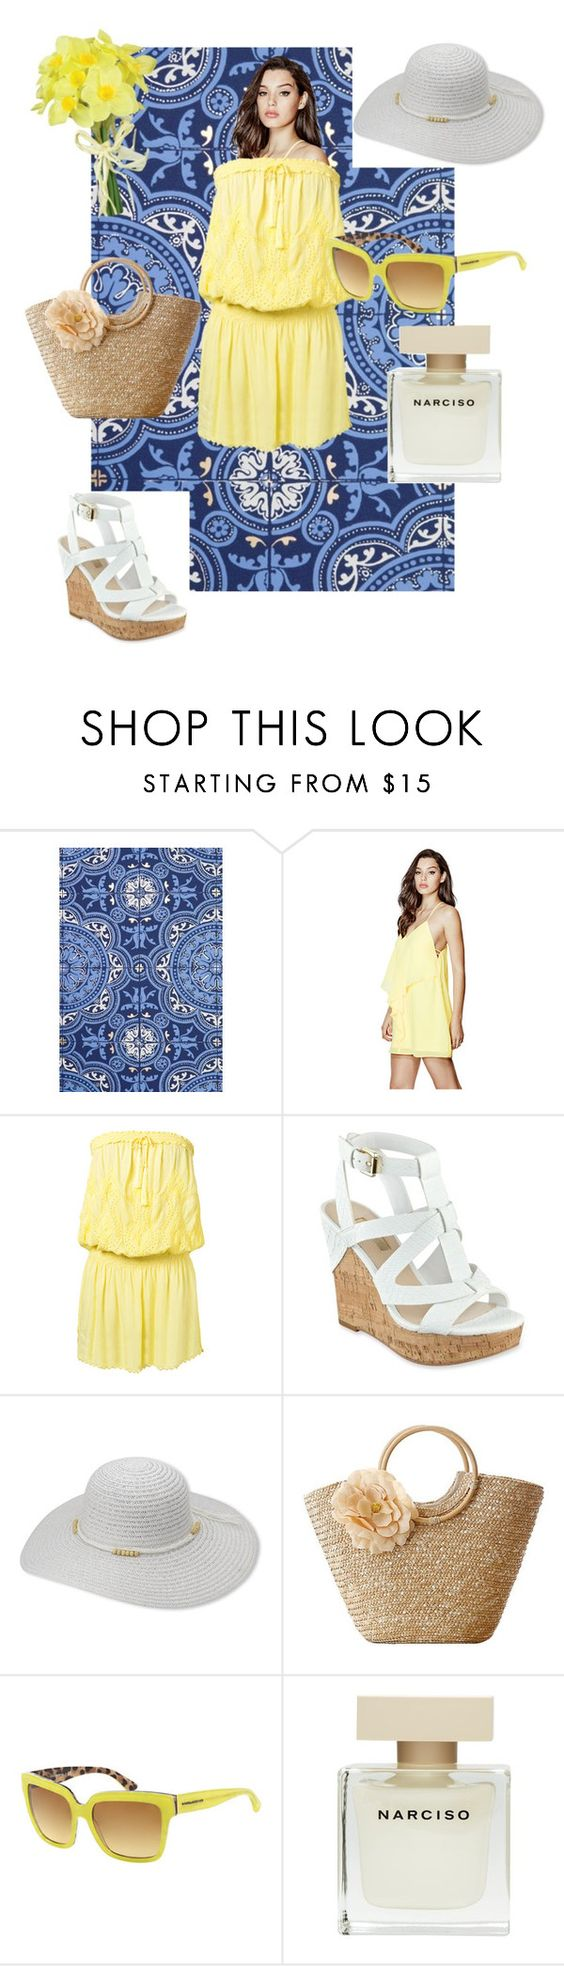 """Untitled #80"" by liiiilylove ❤ liked on Polyvore featuring Cole & Son, GUESS, Melissa Odabash, Dolce&Gabbana, Narciso Rodriguez and Pavilion Broadway"